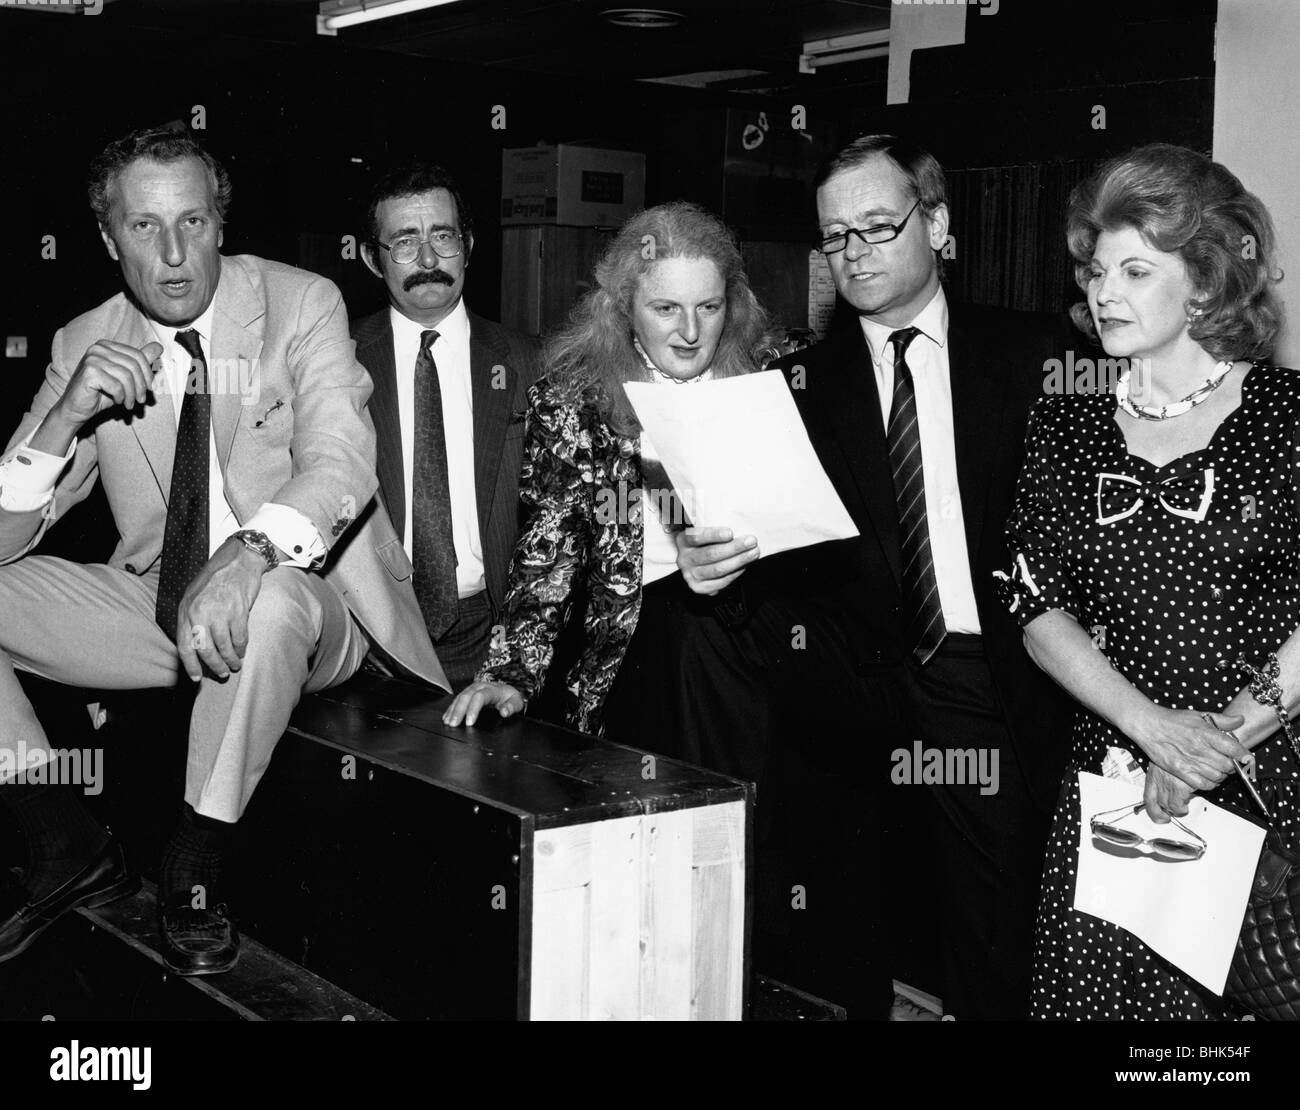 Frederick Forsyth, Robert Winston, Rabbi Julia Neuberger, Jeffrey Archer, and Sally Oppenheim. Artist: Sidney HarrisStock Photo